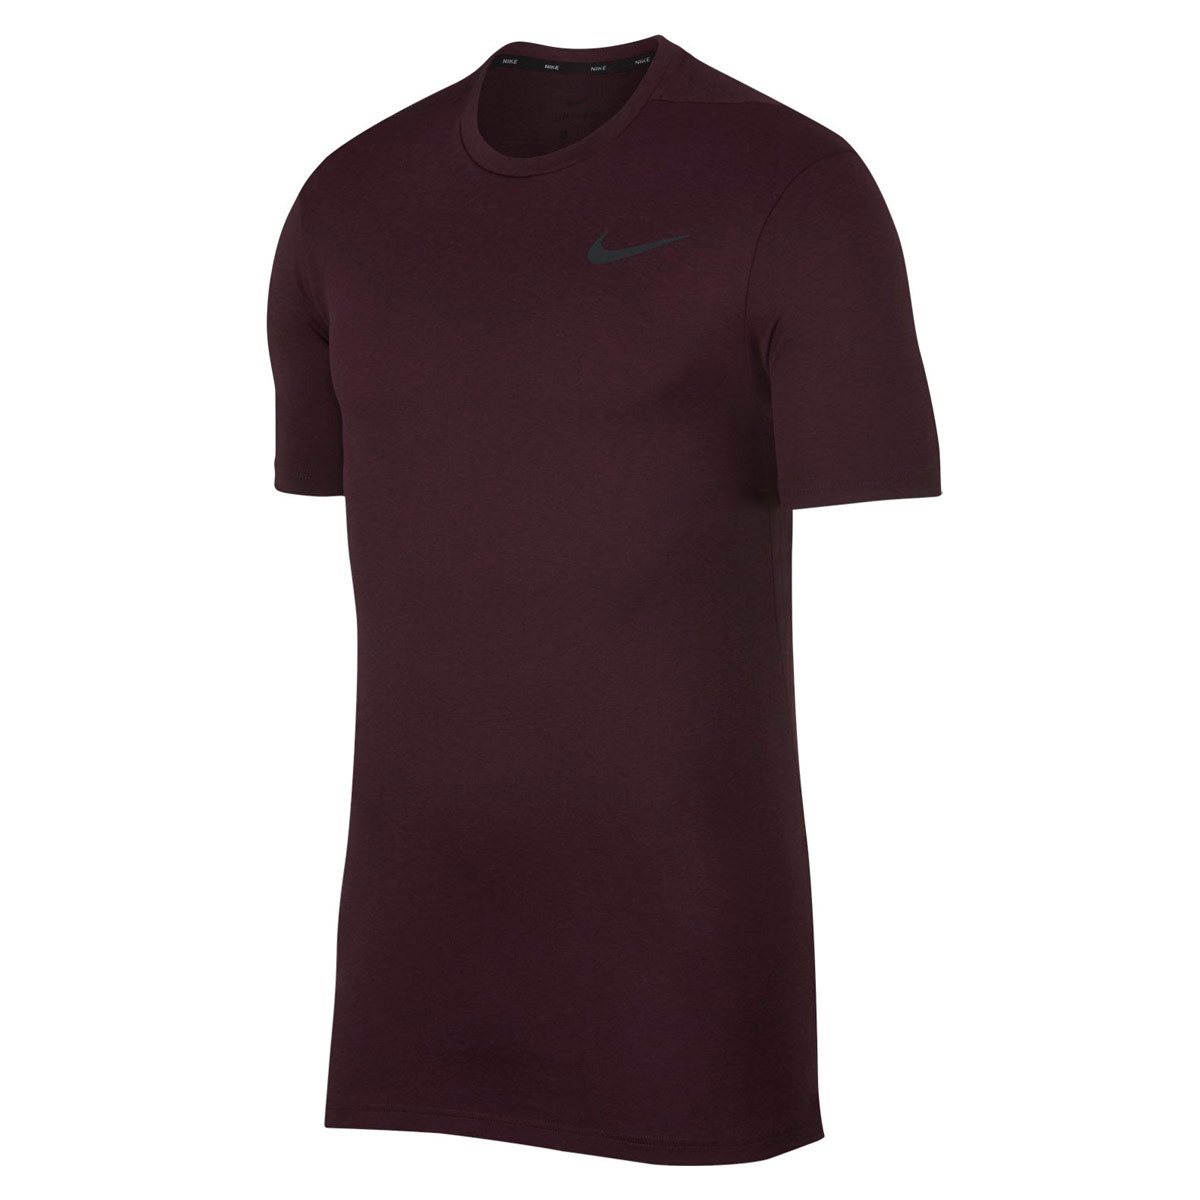 Pour Breathe Maillot Homme Fitness Nike Training Rouge Top sroQhxtdCB